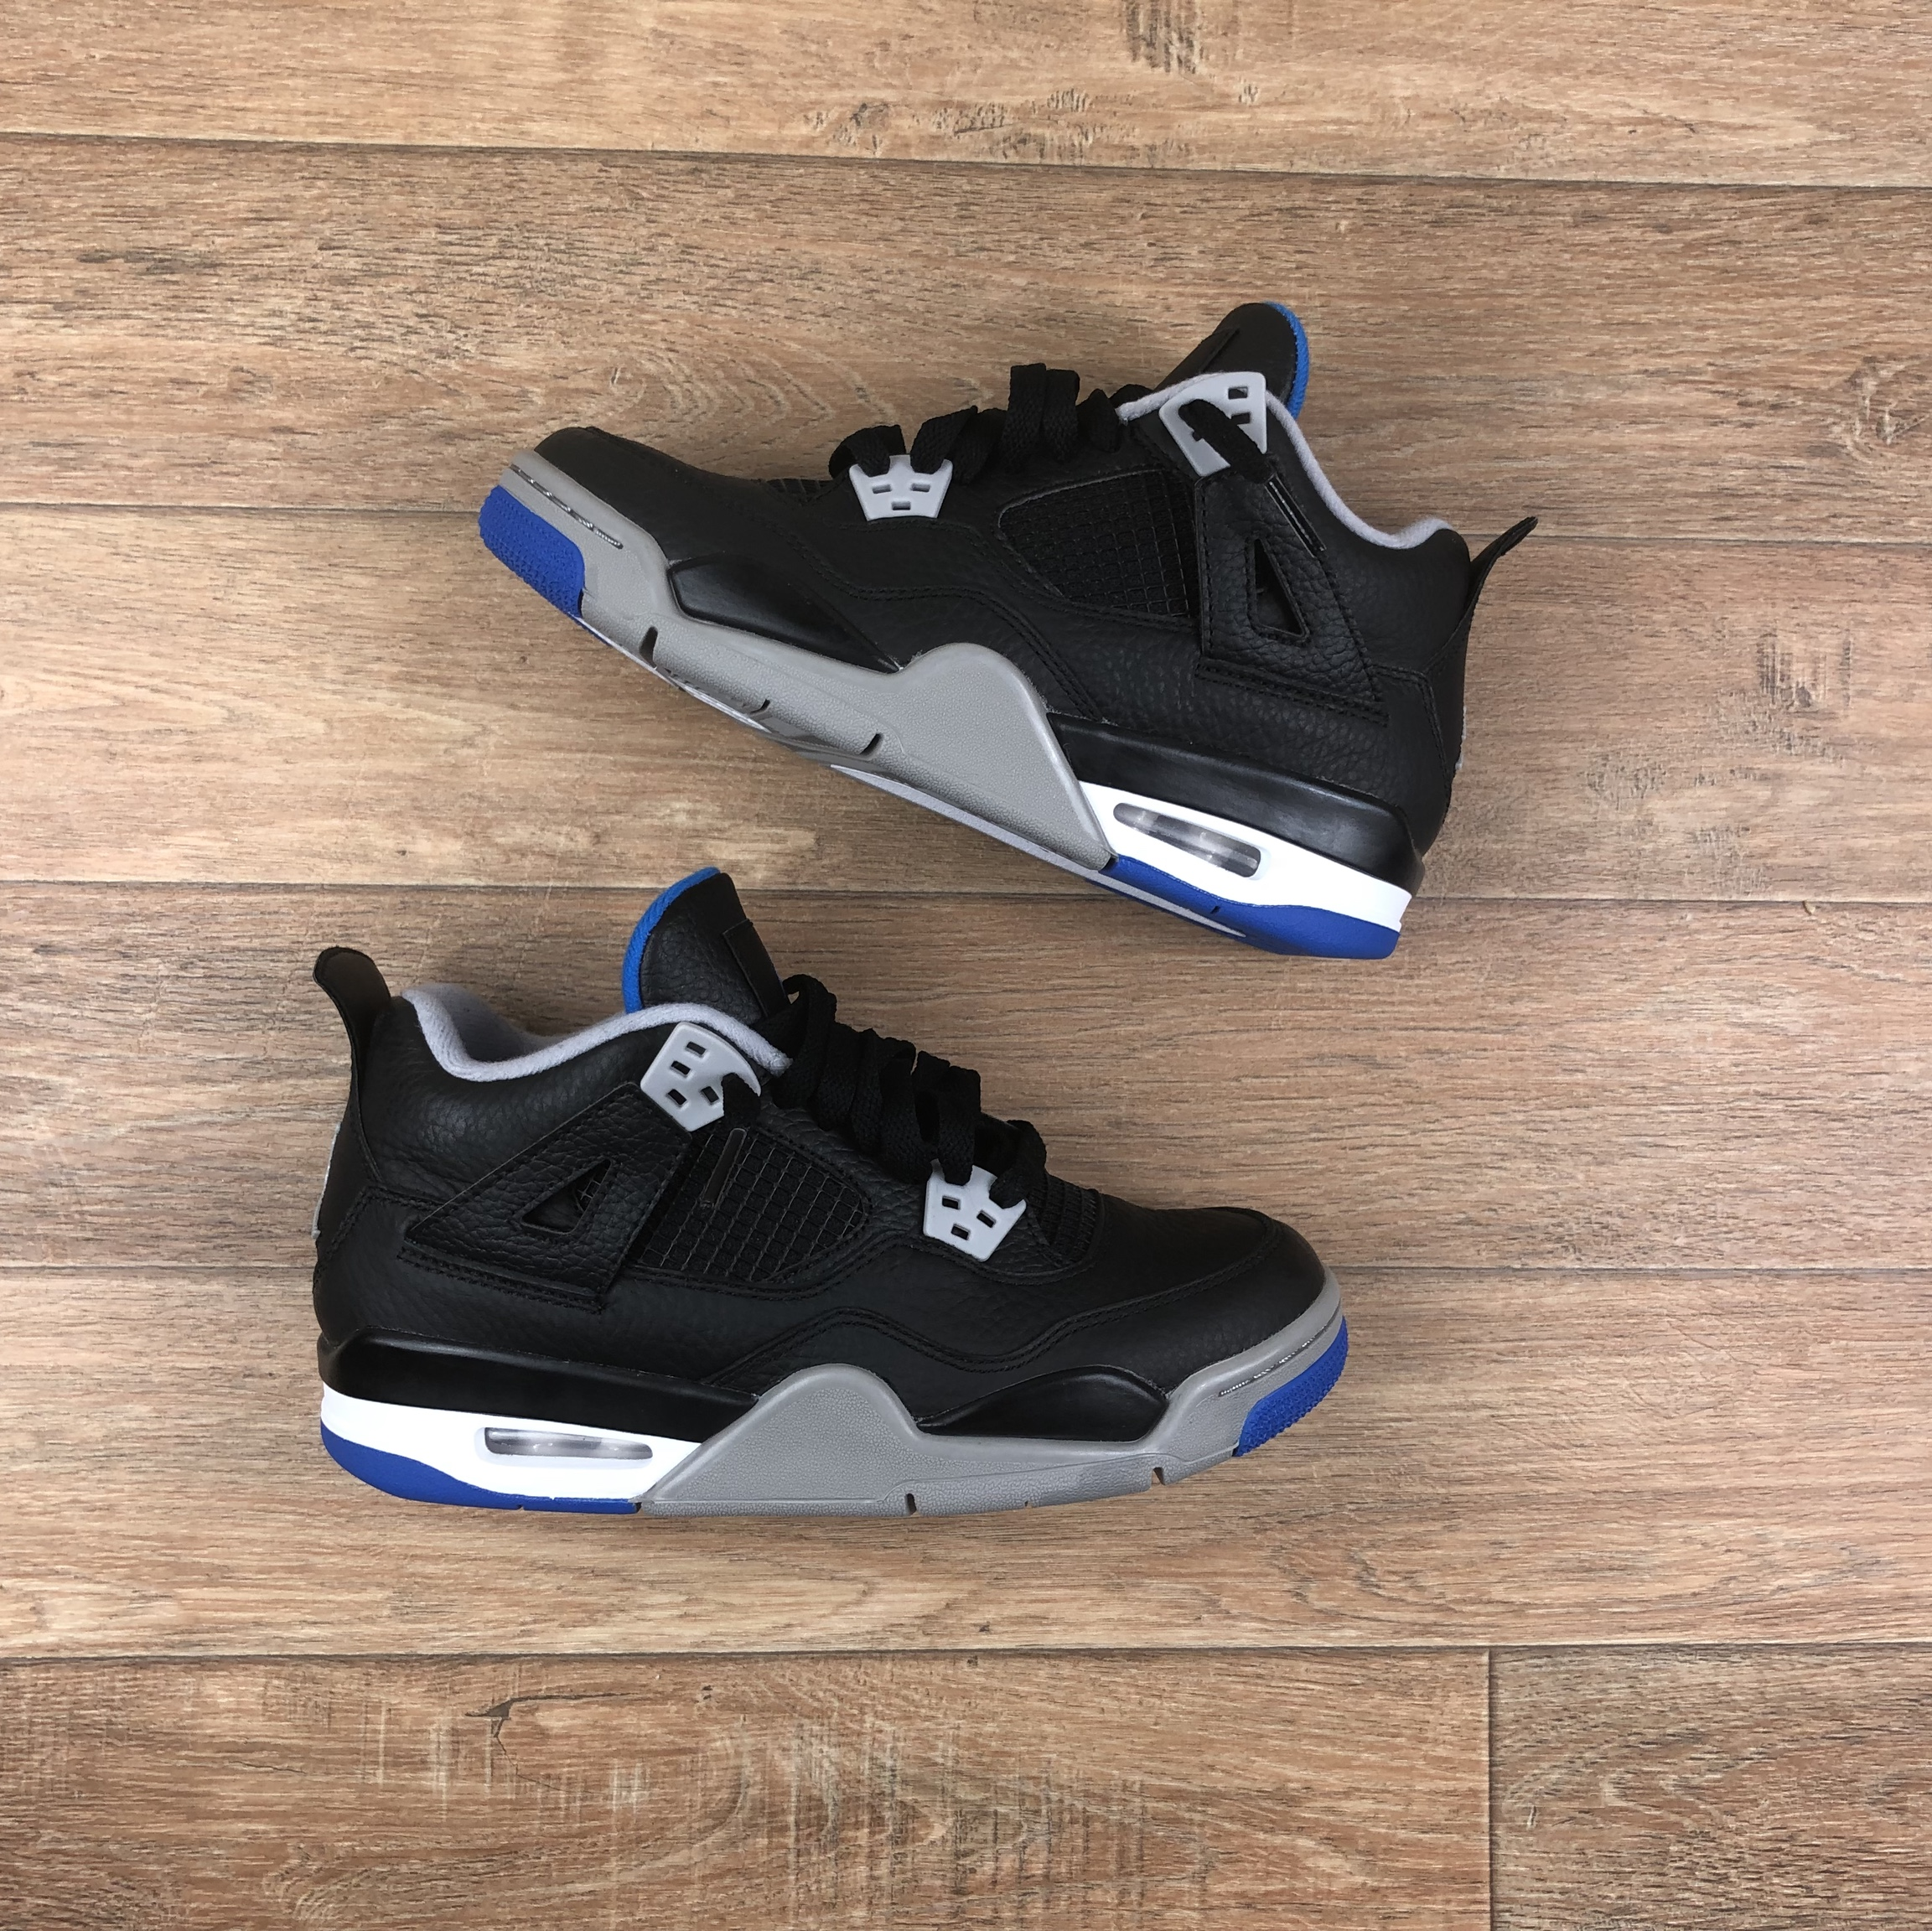 new arrival 6d845 78418 Air Jordan 4 | Brand New Size: Uk 4 Retail Price:... - Depop